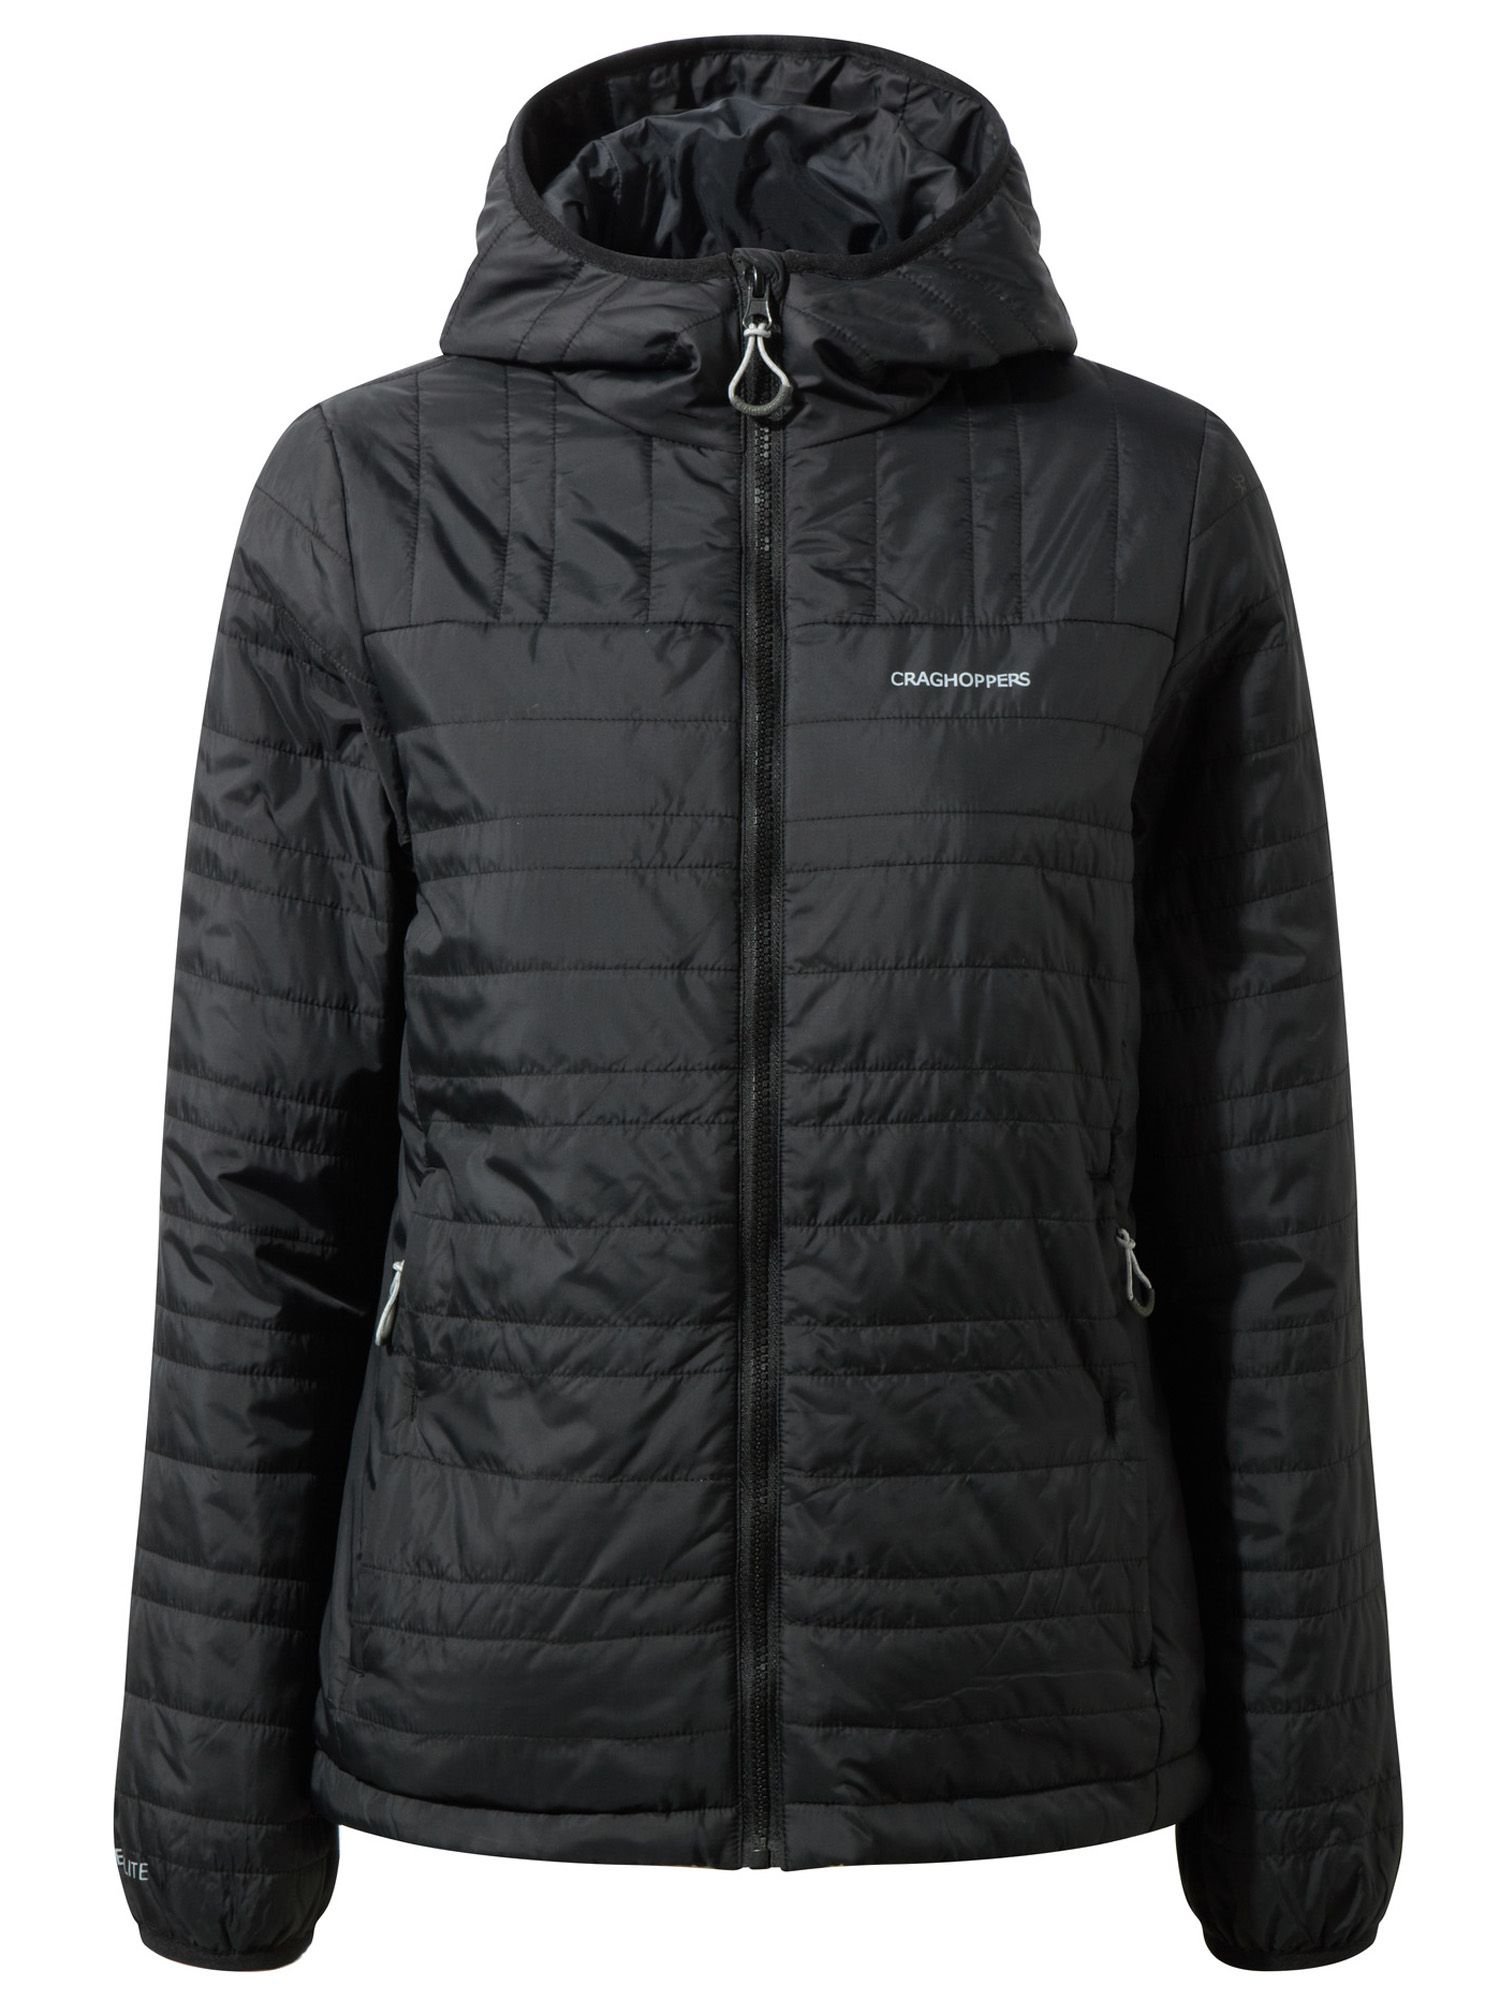 Craghoppers CompressLite Lightweight Jacket II, Black